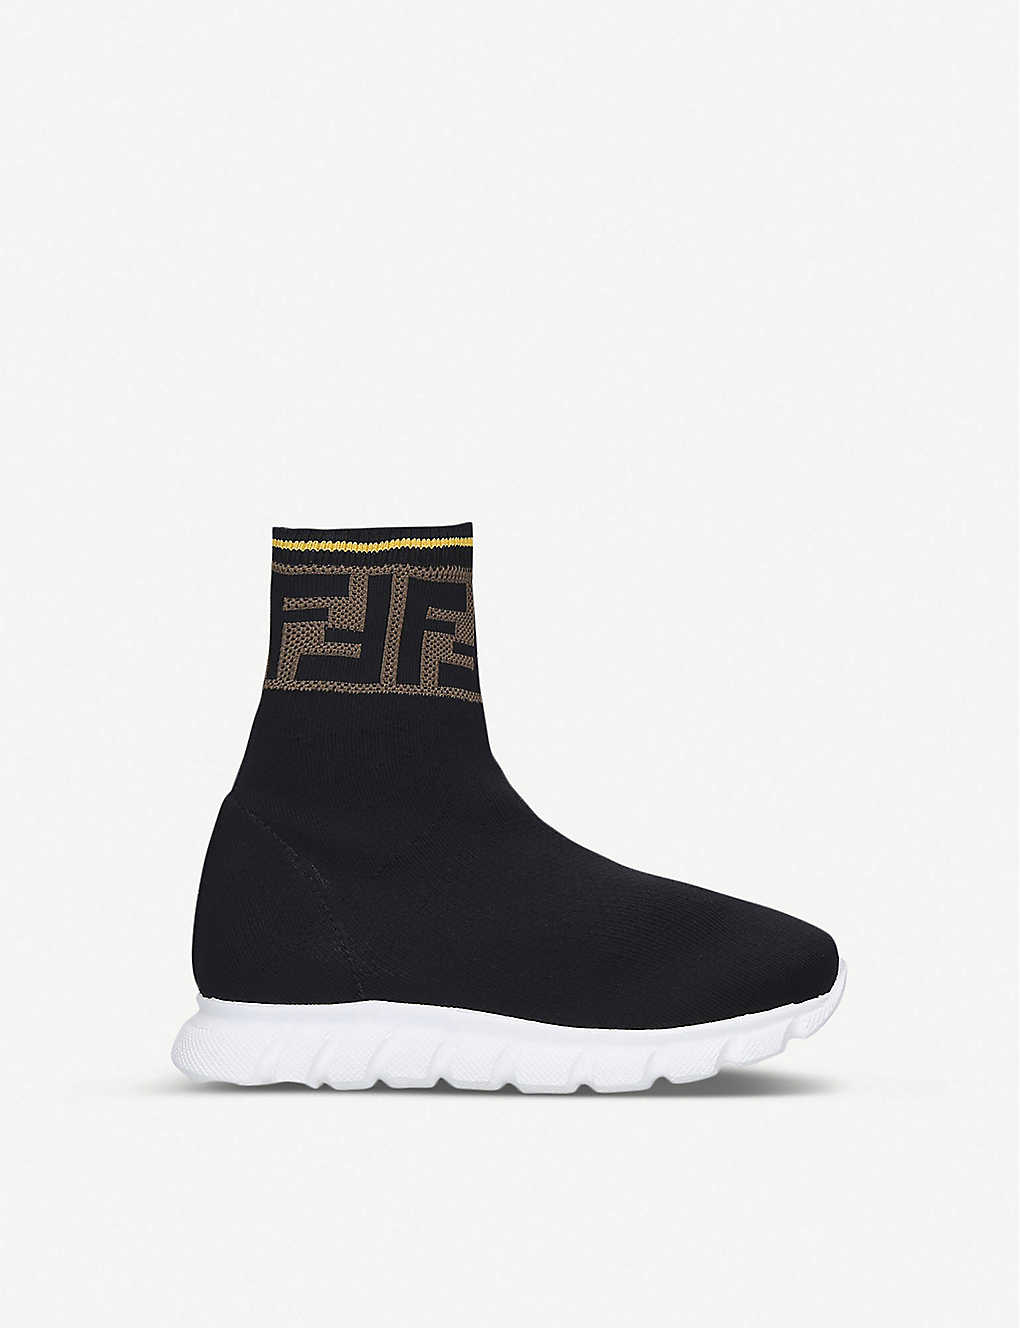 FENDI: FF-logo panel knit trainers 3-7 years